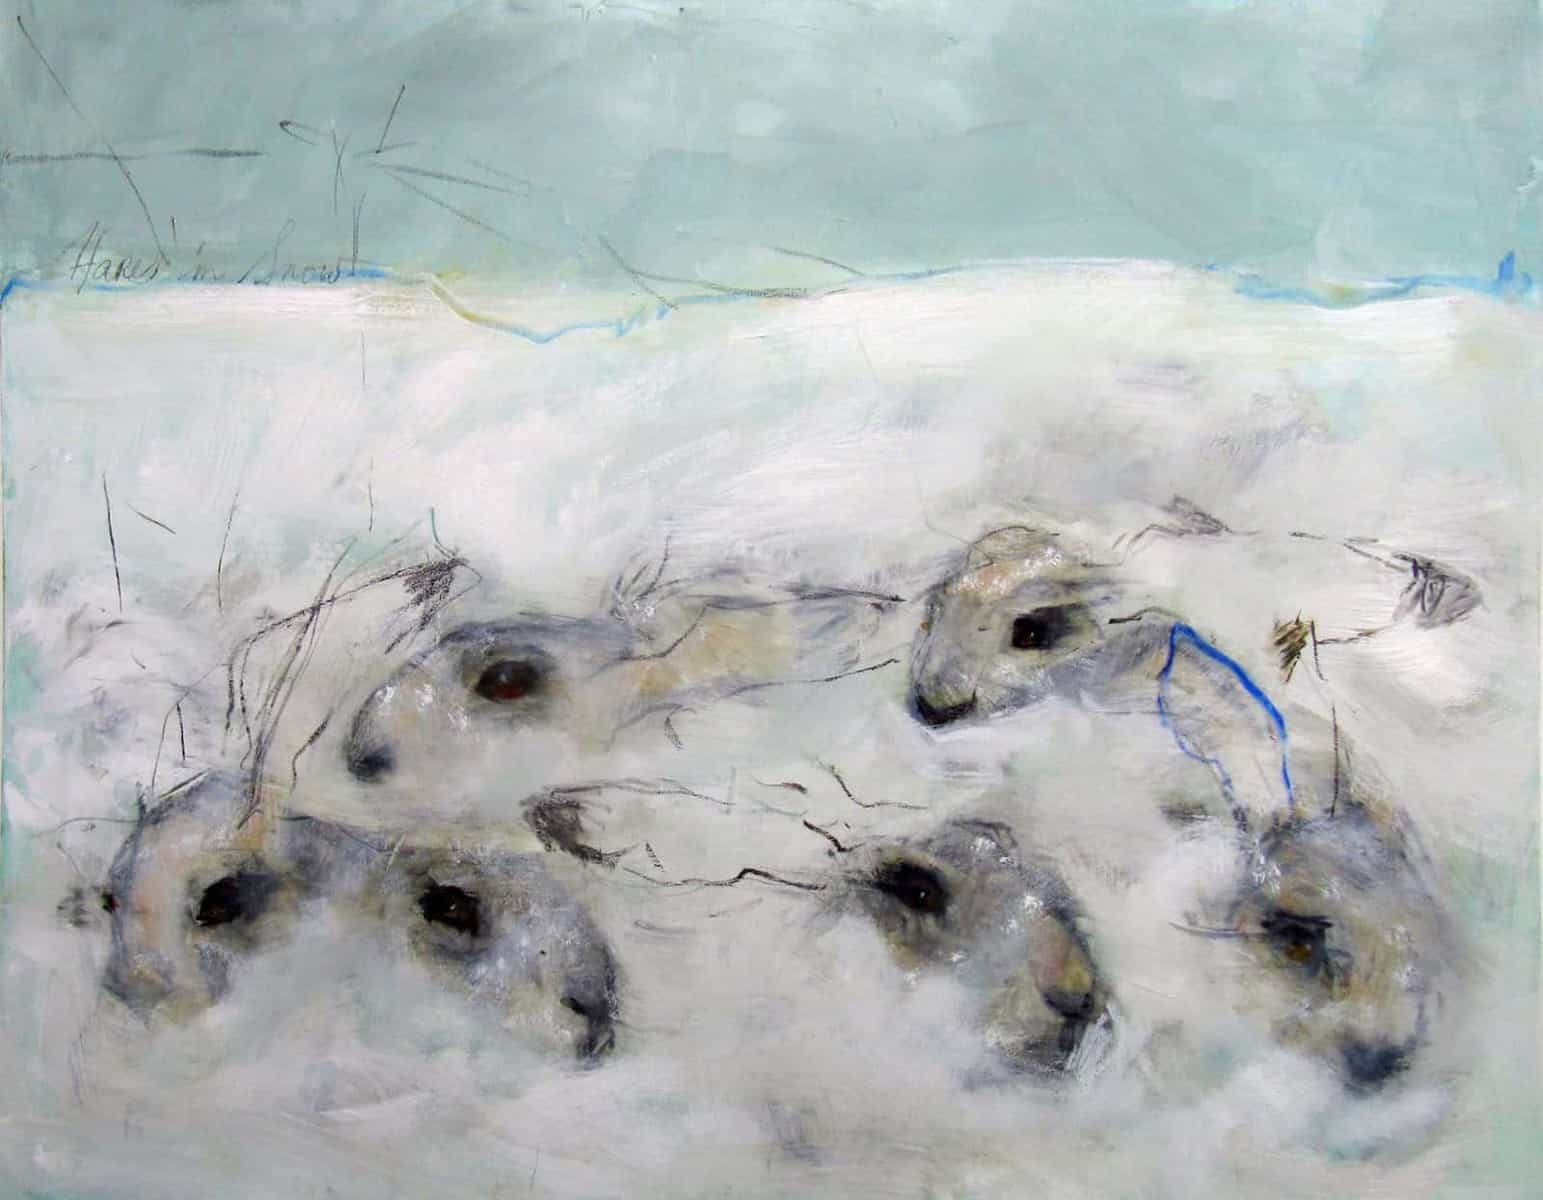 Six Hares in Snow, Oil on Canvas, 80 x 100cm